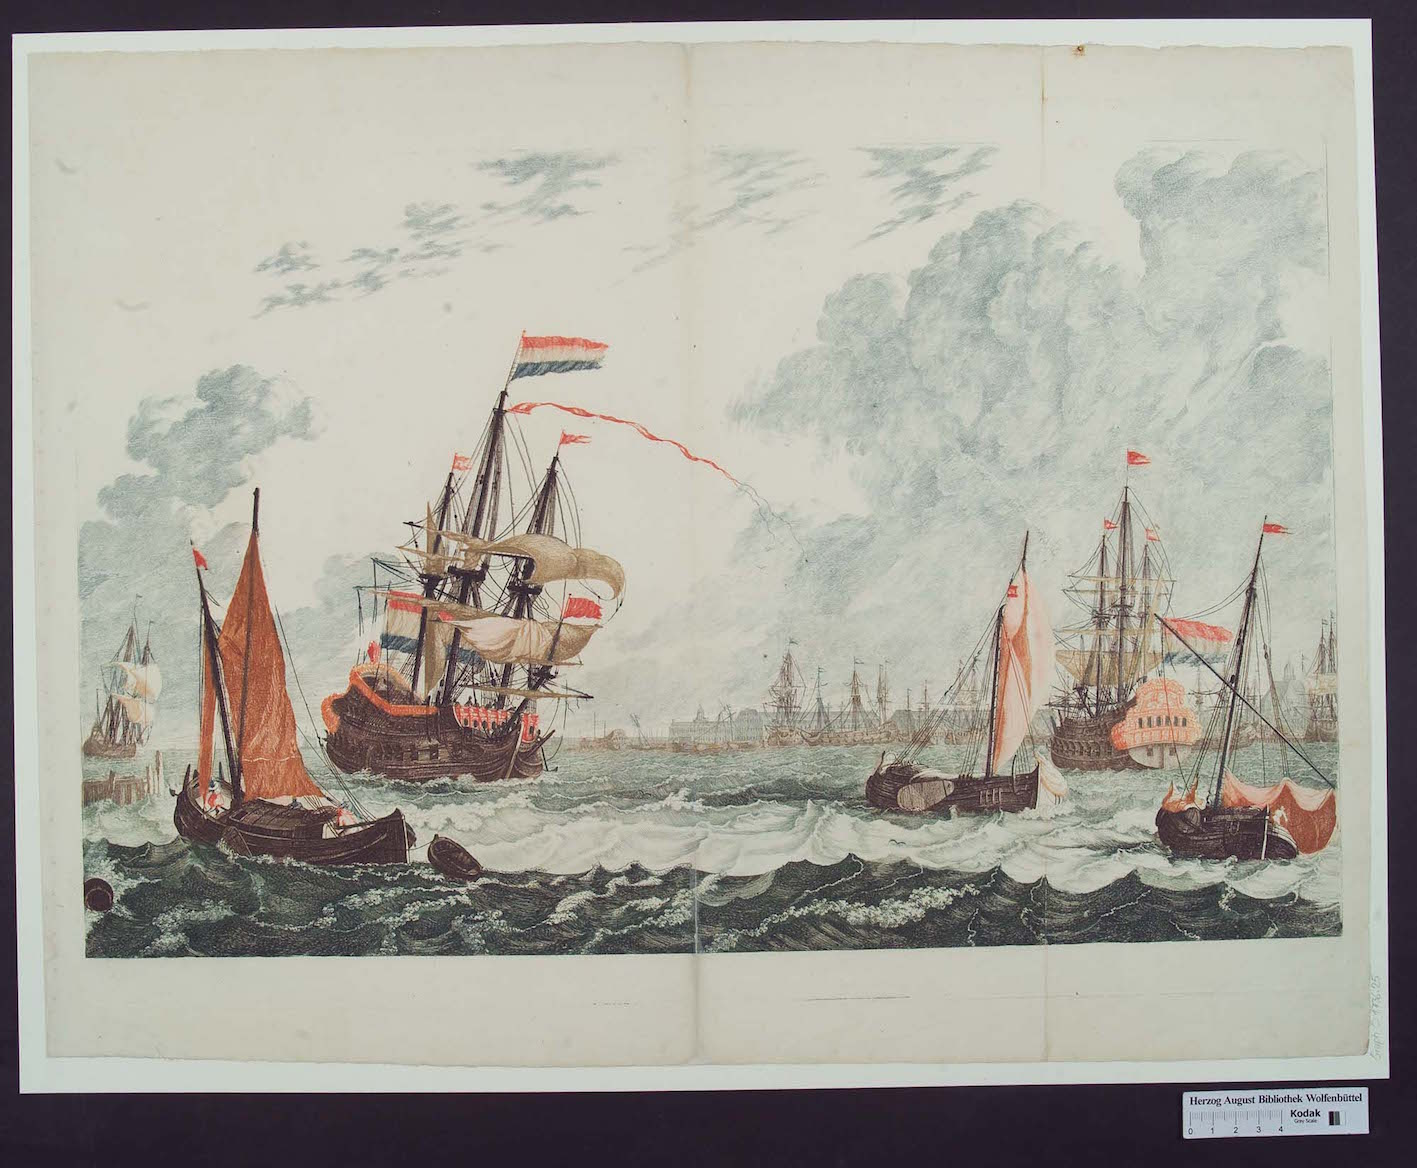 """Workshop of Johannes Teyler, Amsterdam: Ships at the IJ on Choppy Water, the East India House in the Background, line etching inked à la poupée in blue, brown, greenish blue, orange, red, yellow-brown; Herzog August Library, Graph. C: 1736.25."""